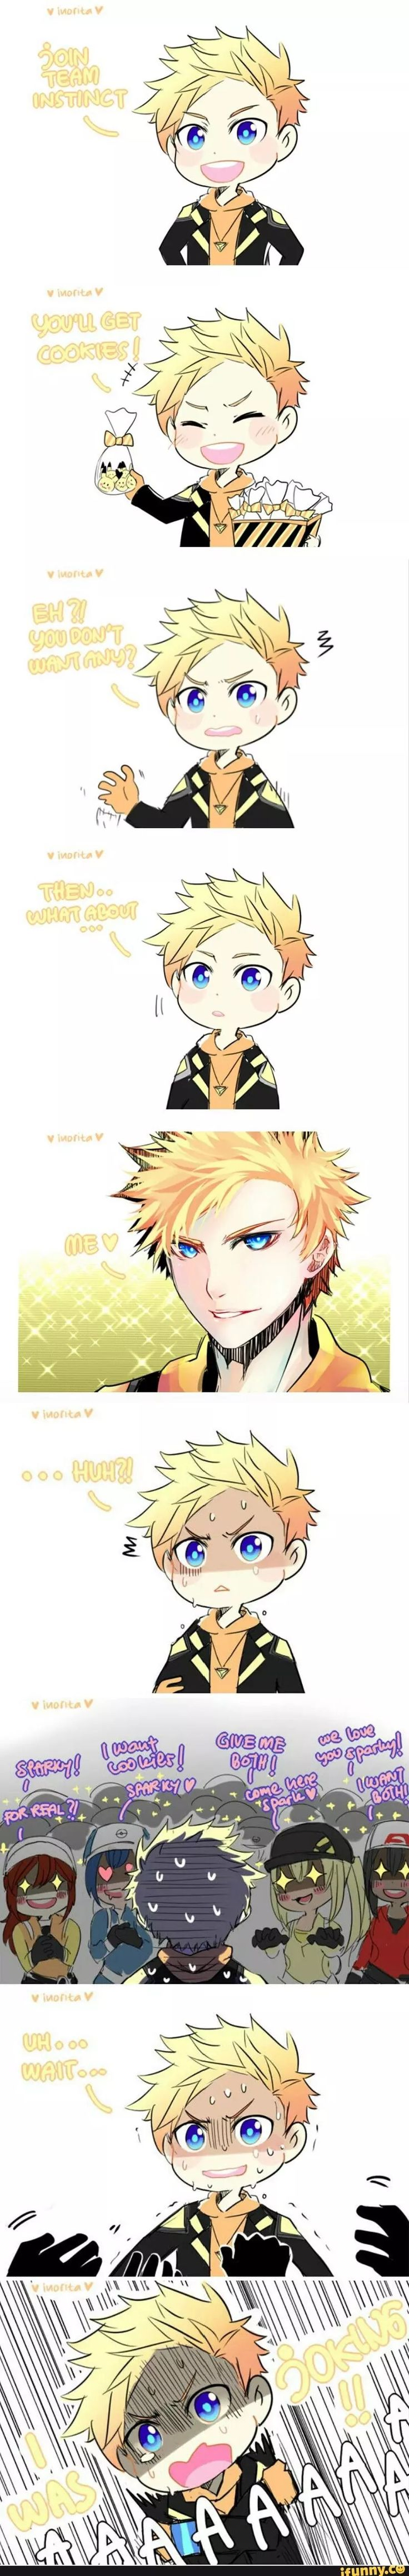 Spark we all want you~- *coughs* I-I mean uhh...l-let's just be friends and I'll have the cookies